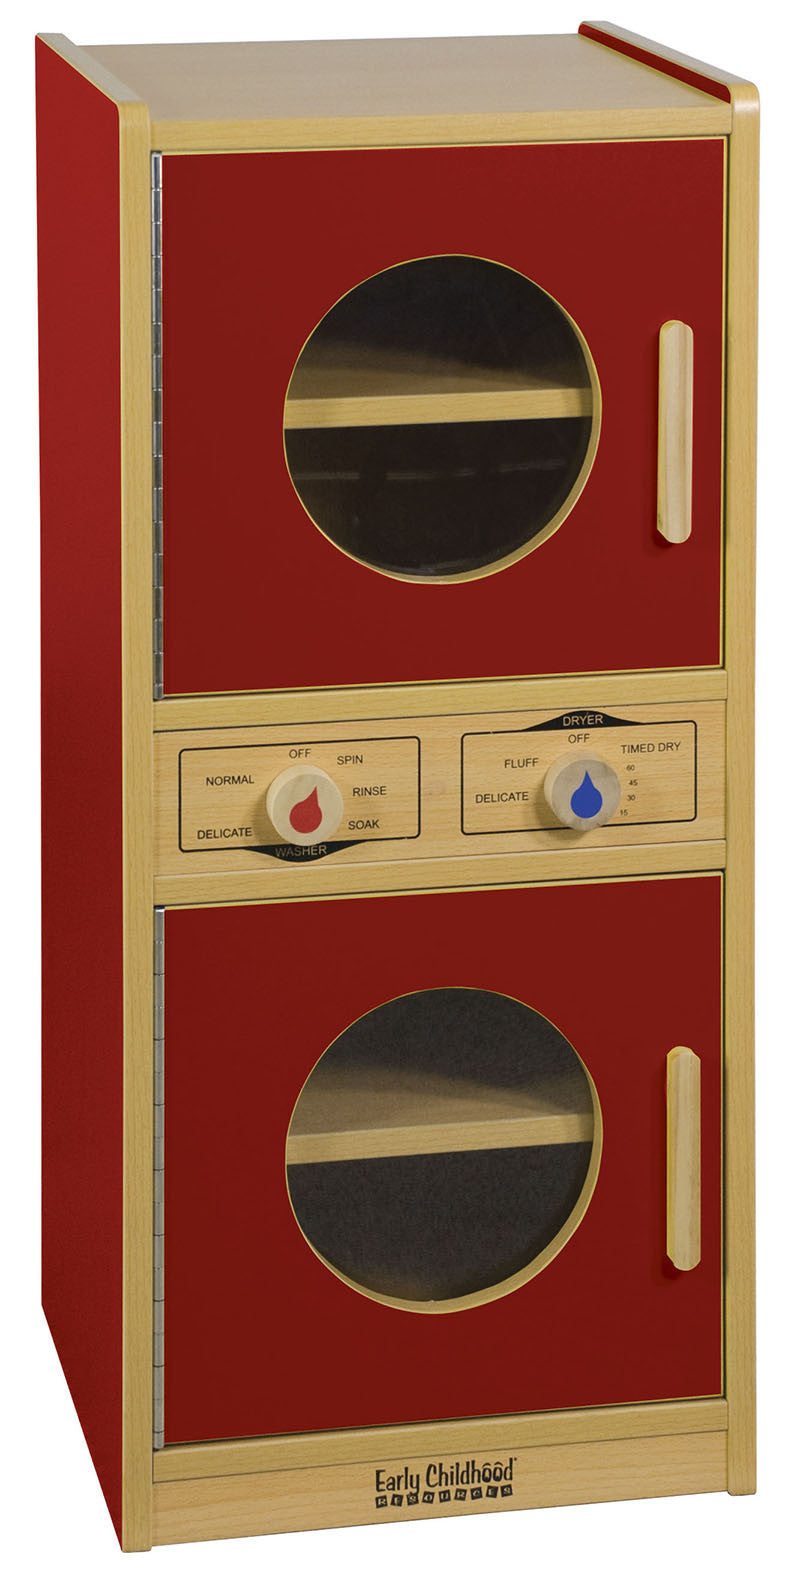 ECR Elr-0744-rd Colorful Essentials Play Washer/dryer - Red